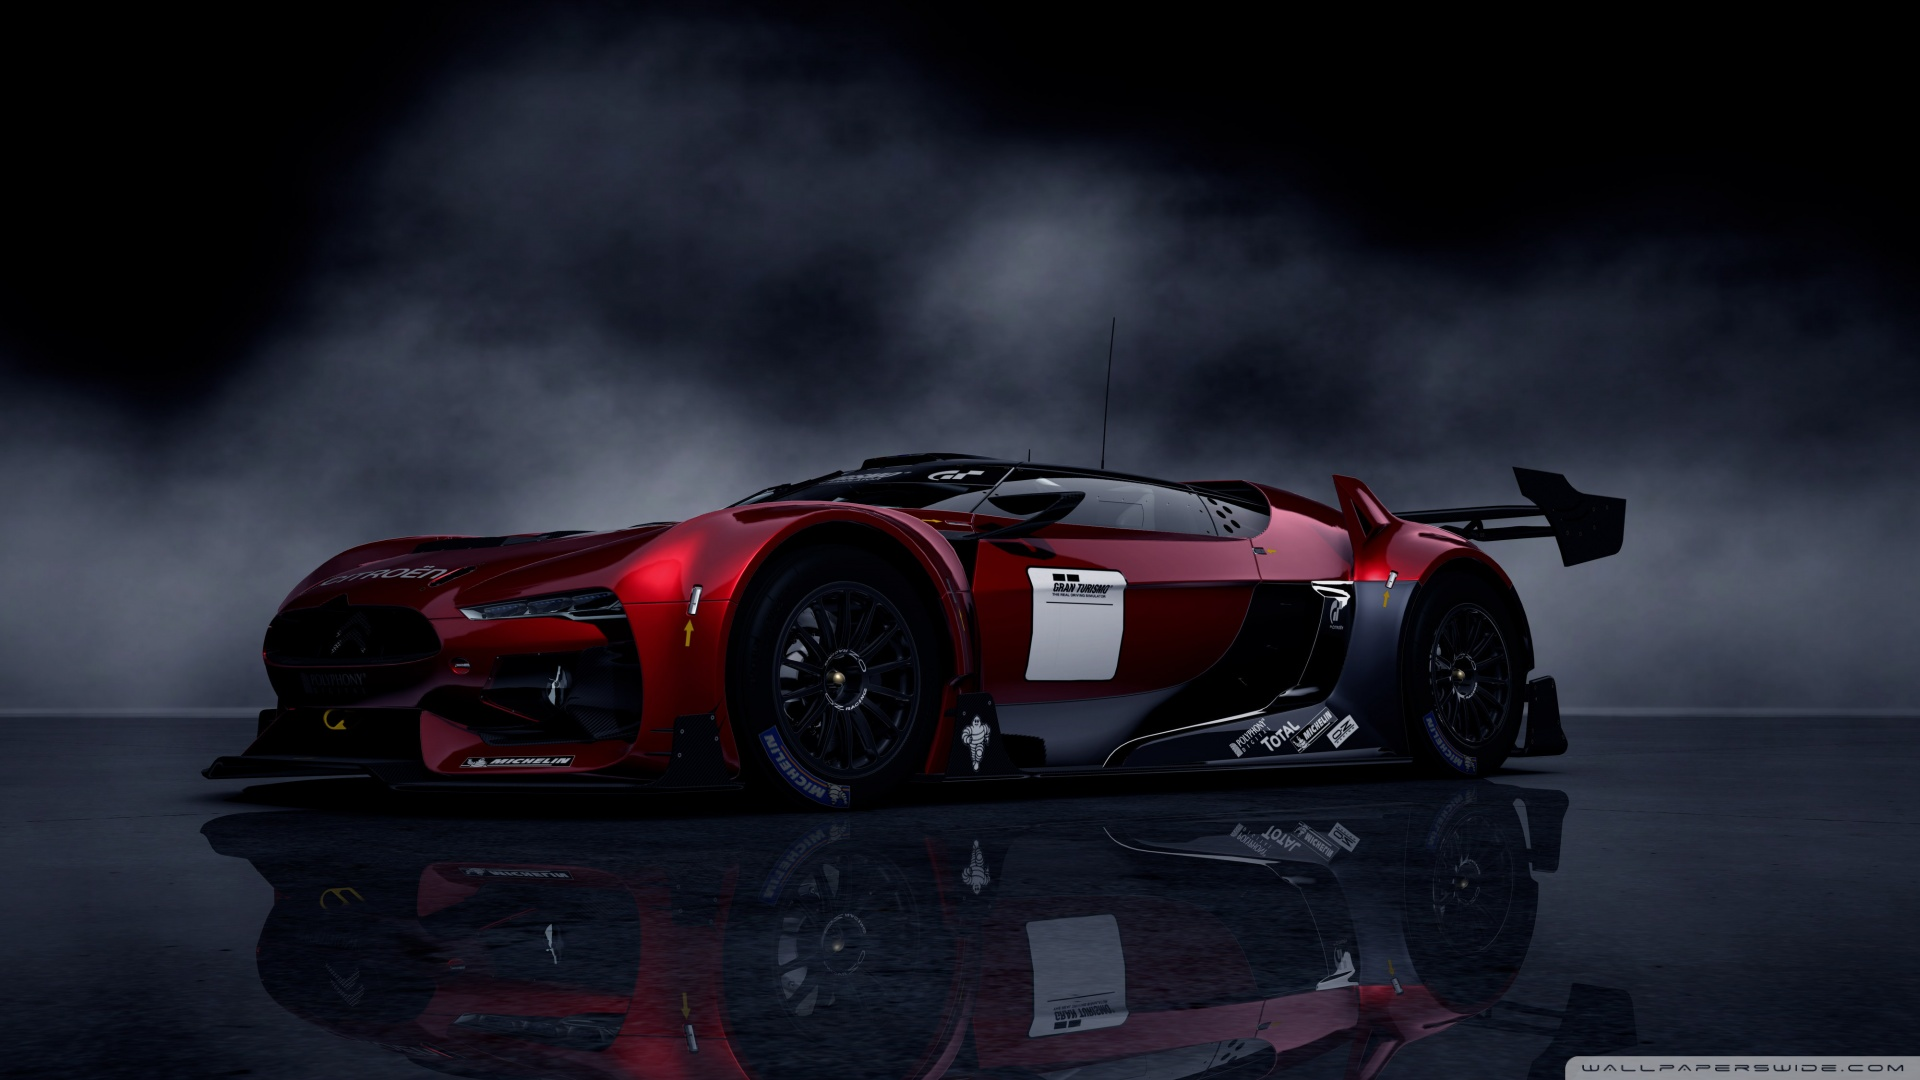 citroen_gt_super_sport-wallpaper-1920x1080